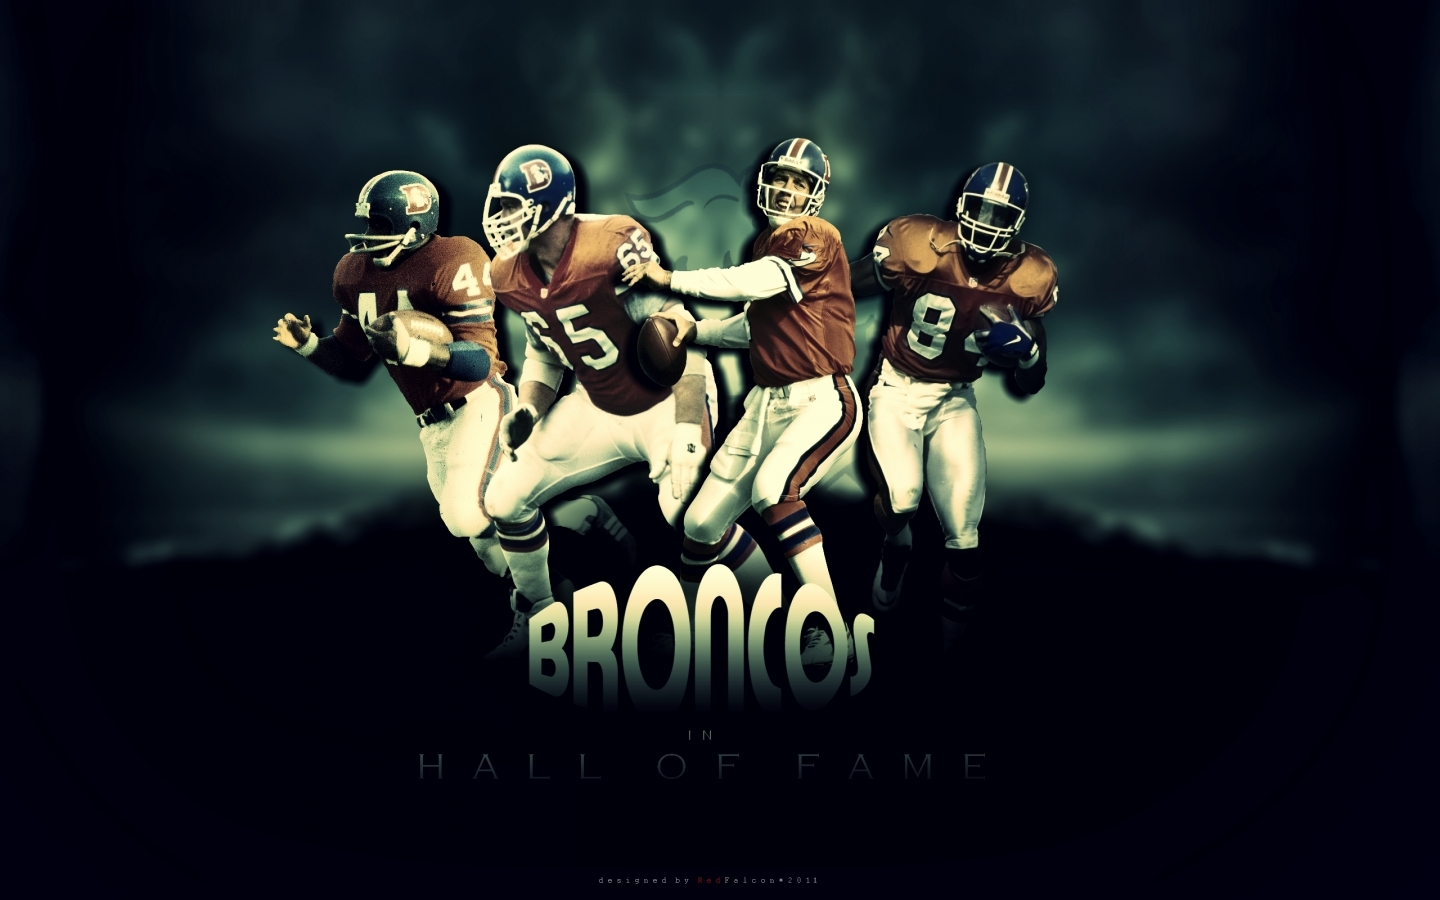 Broncos Hall of Fame for 1440 x 900 widescreen resolution